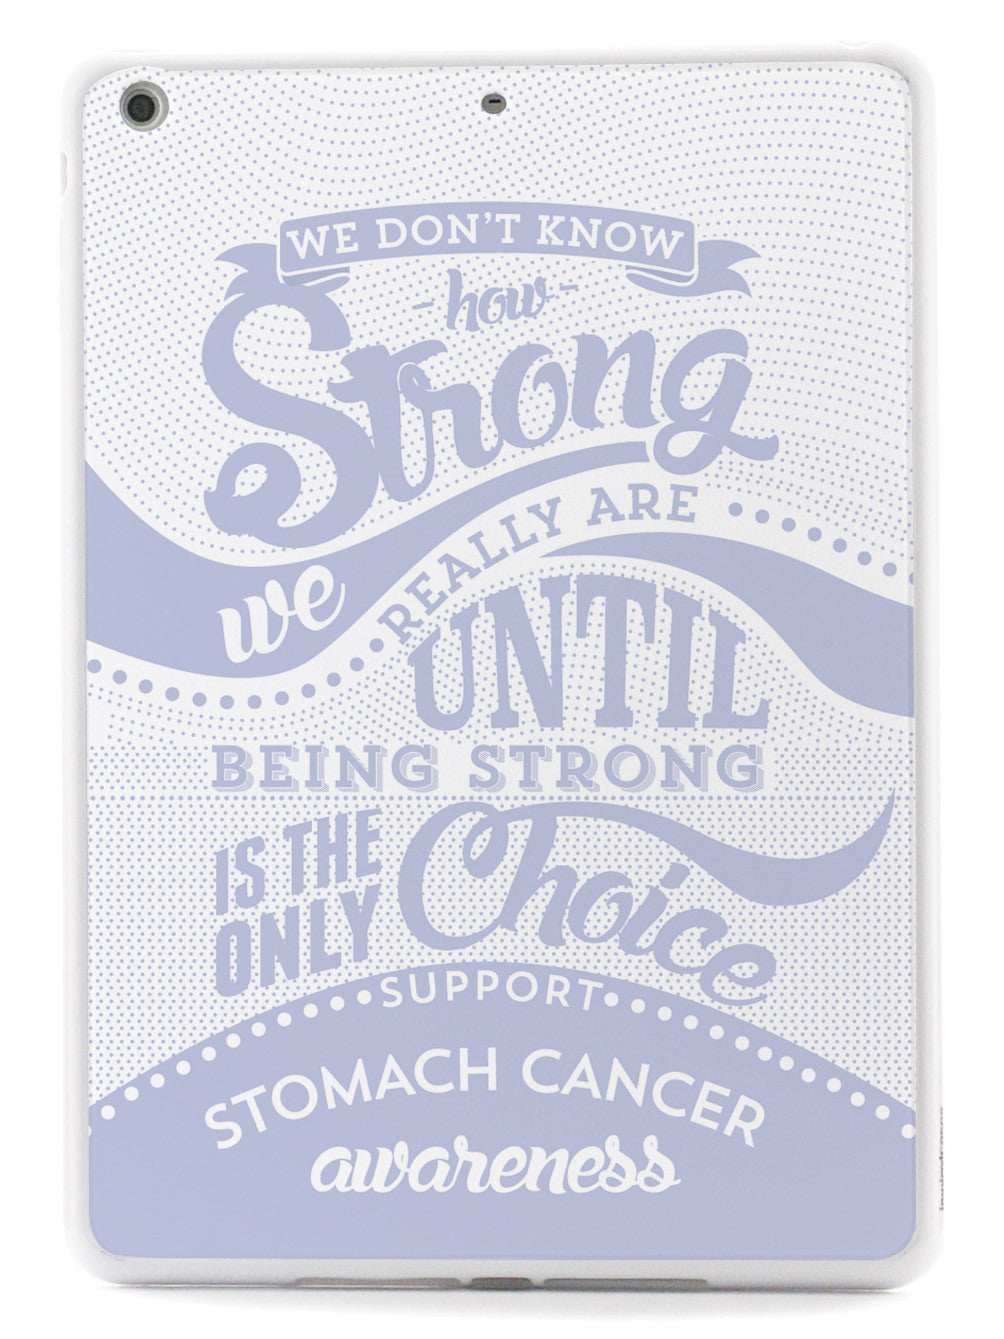 Stomach Cancer - How Strong Case